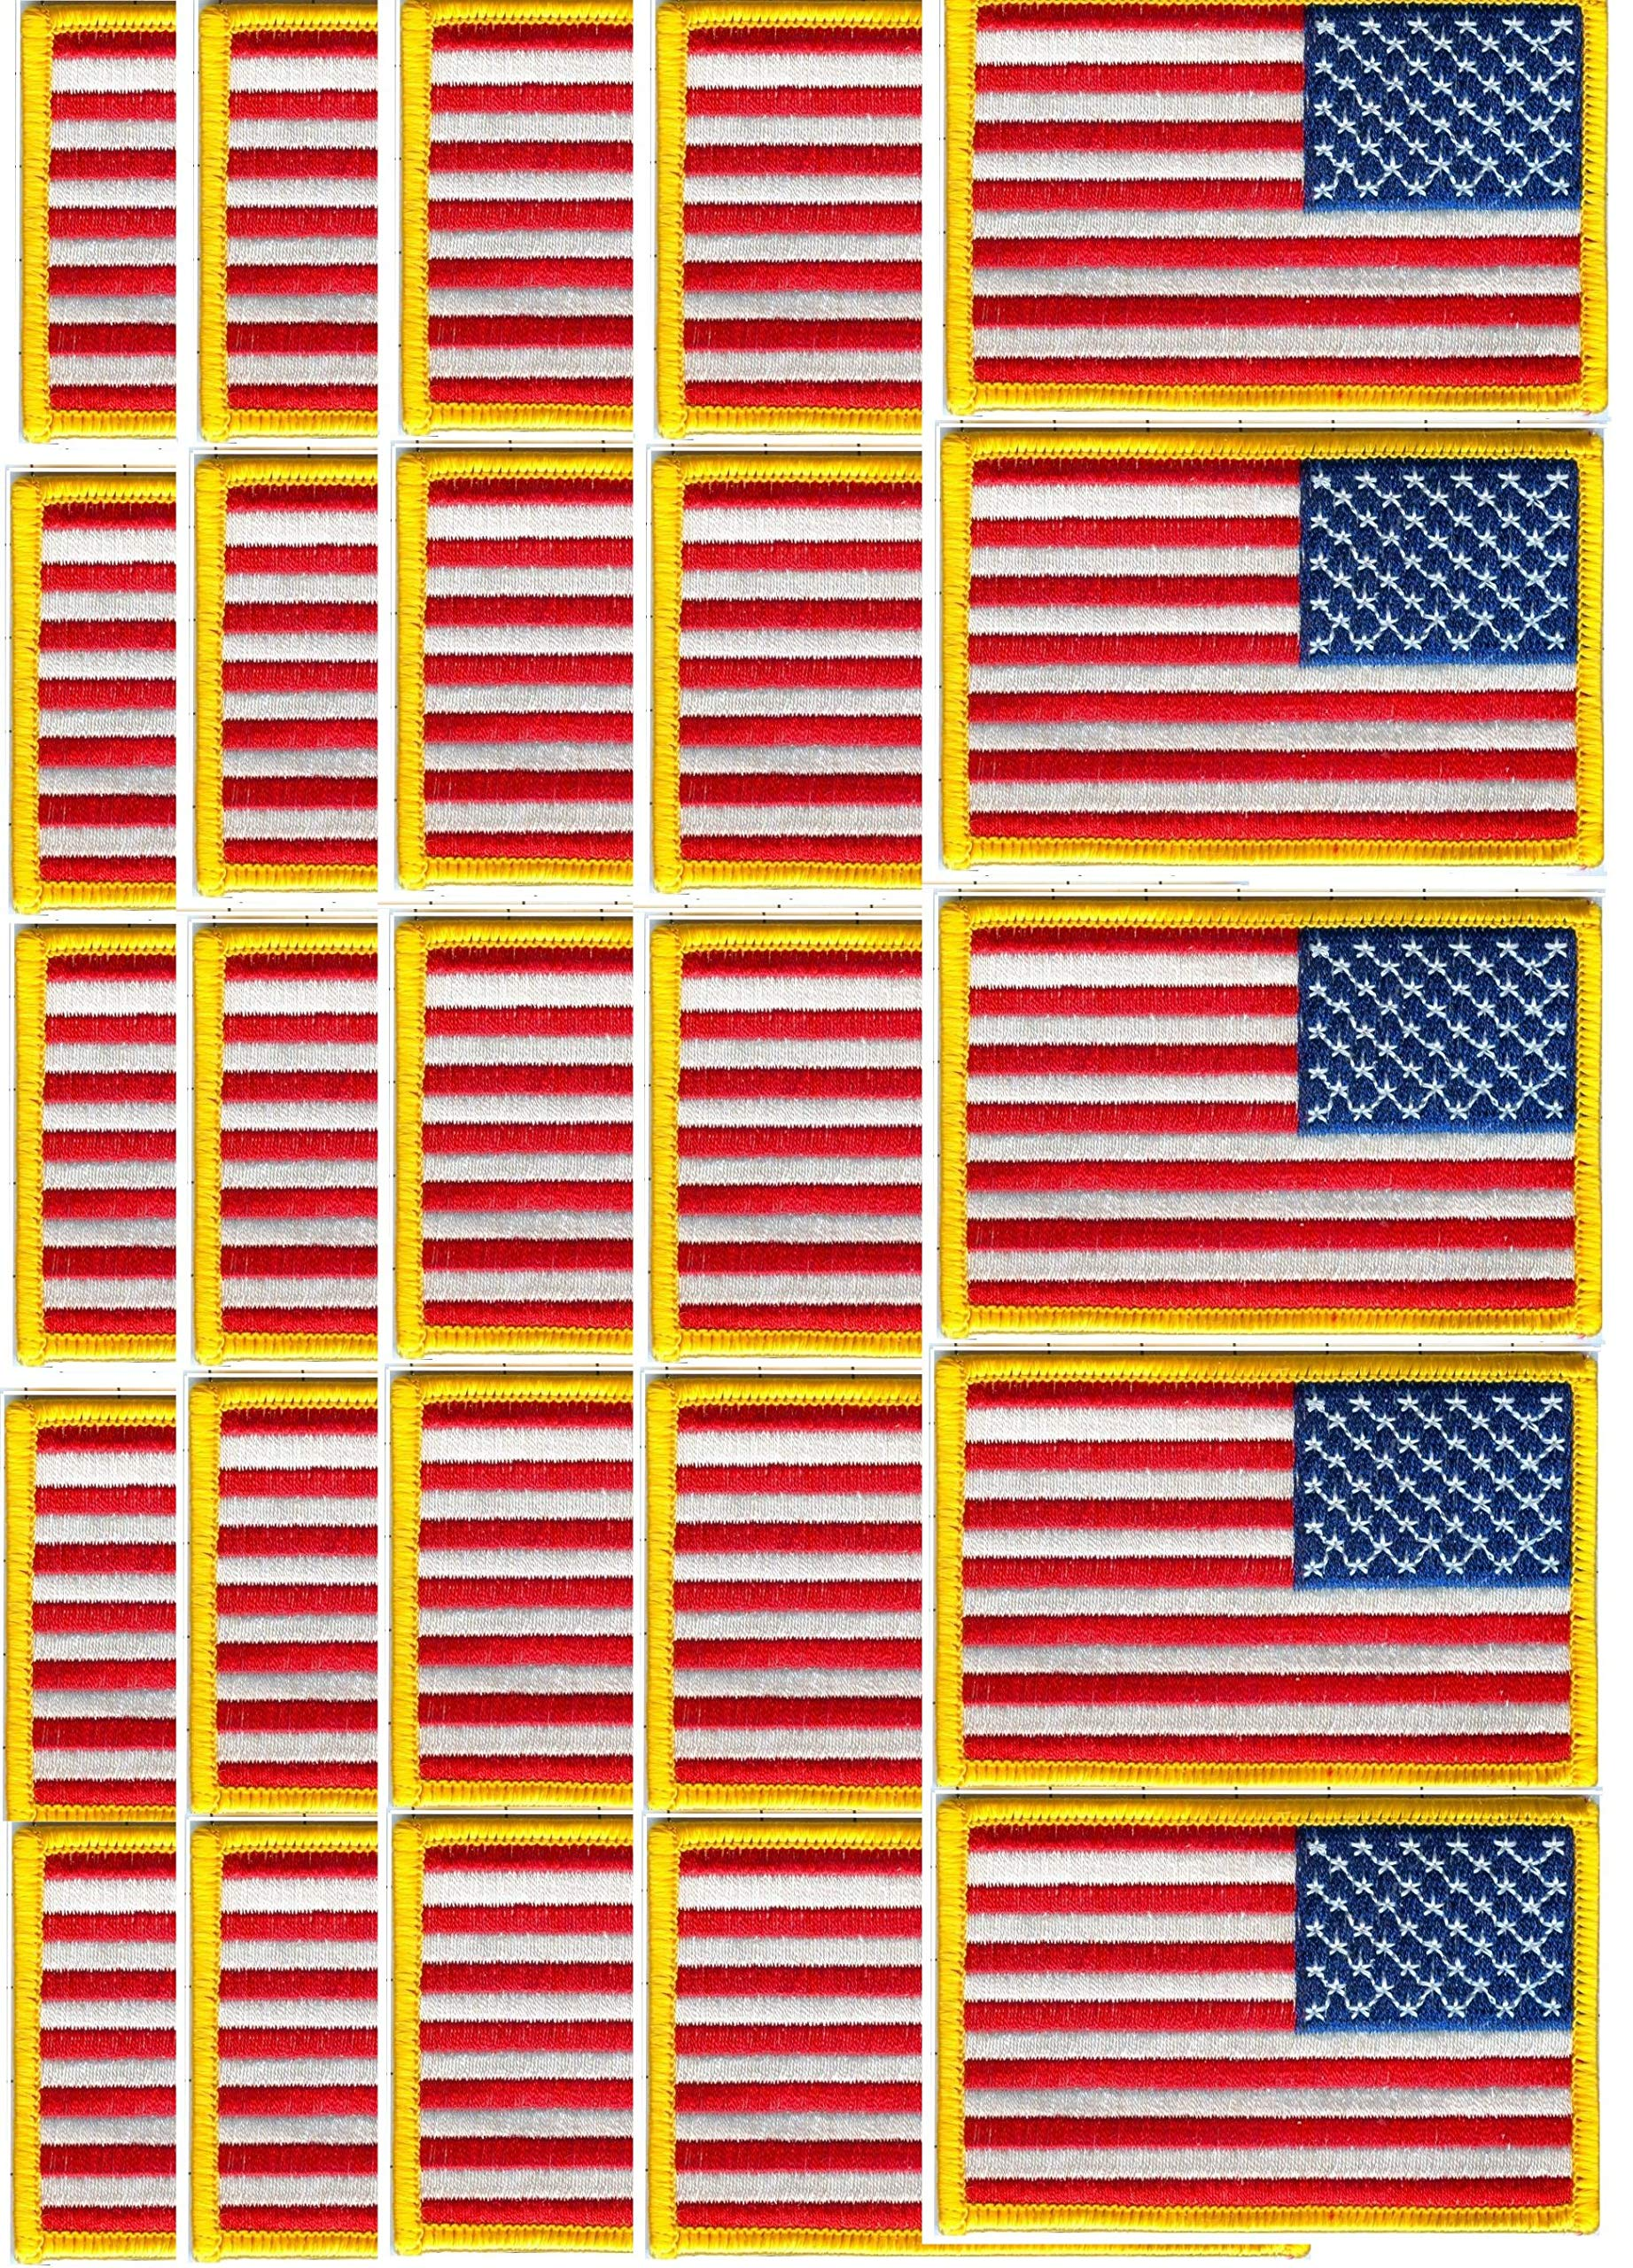 US Flag Patch 100% Embroidered Star Field Right Gold Border 3 1/2'' X 2 1/4'' Lot of 100@0.50ea by Cinnamon Orchid Patches